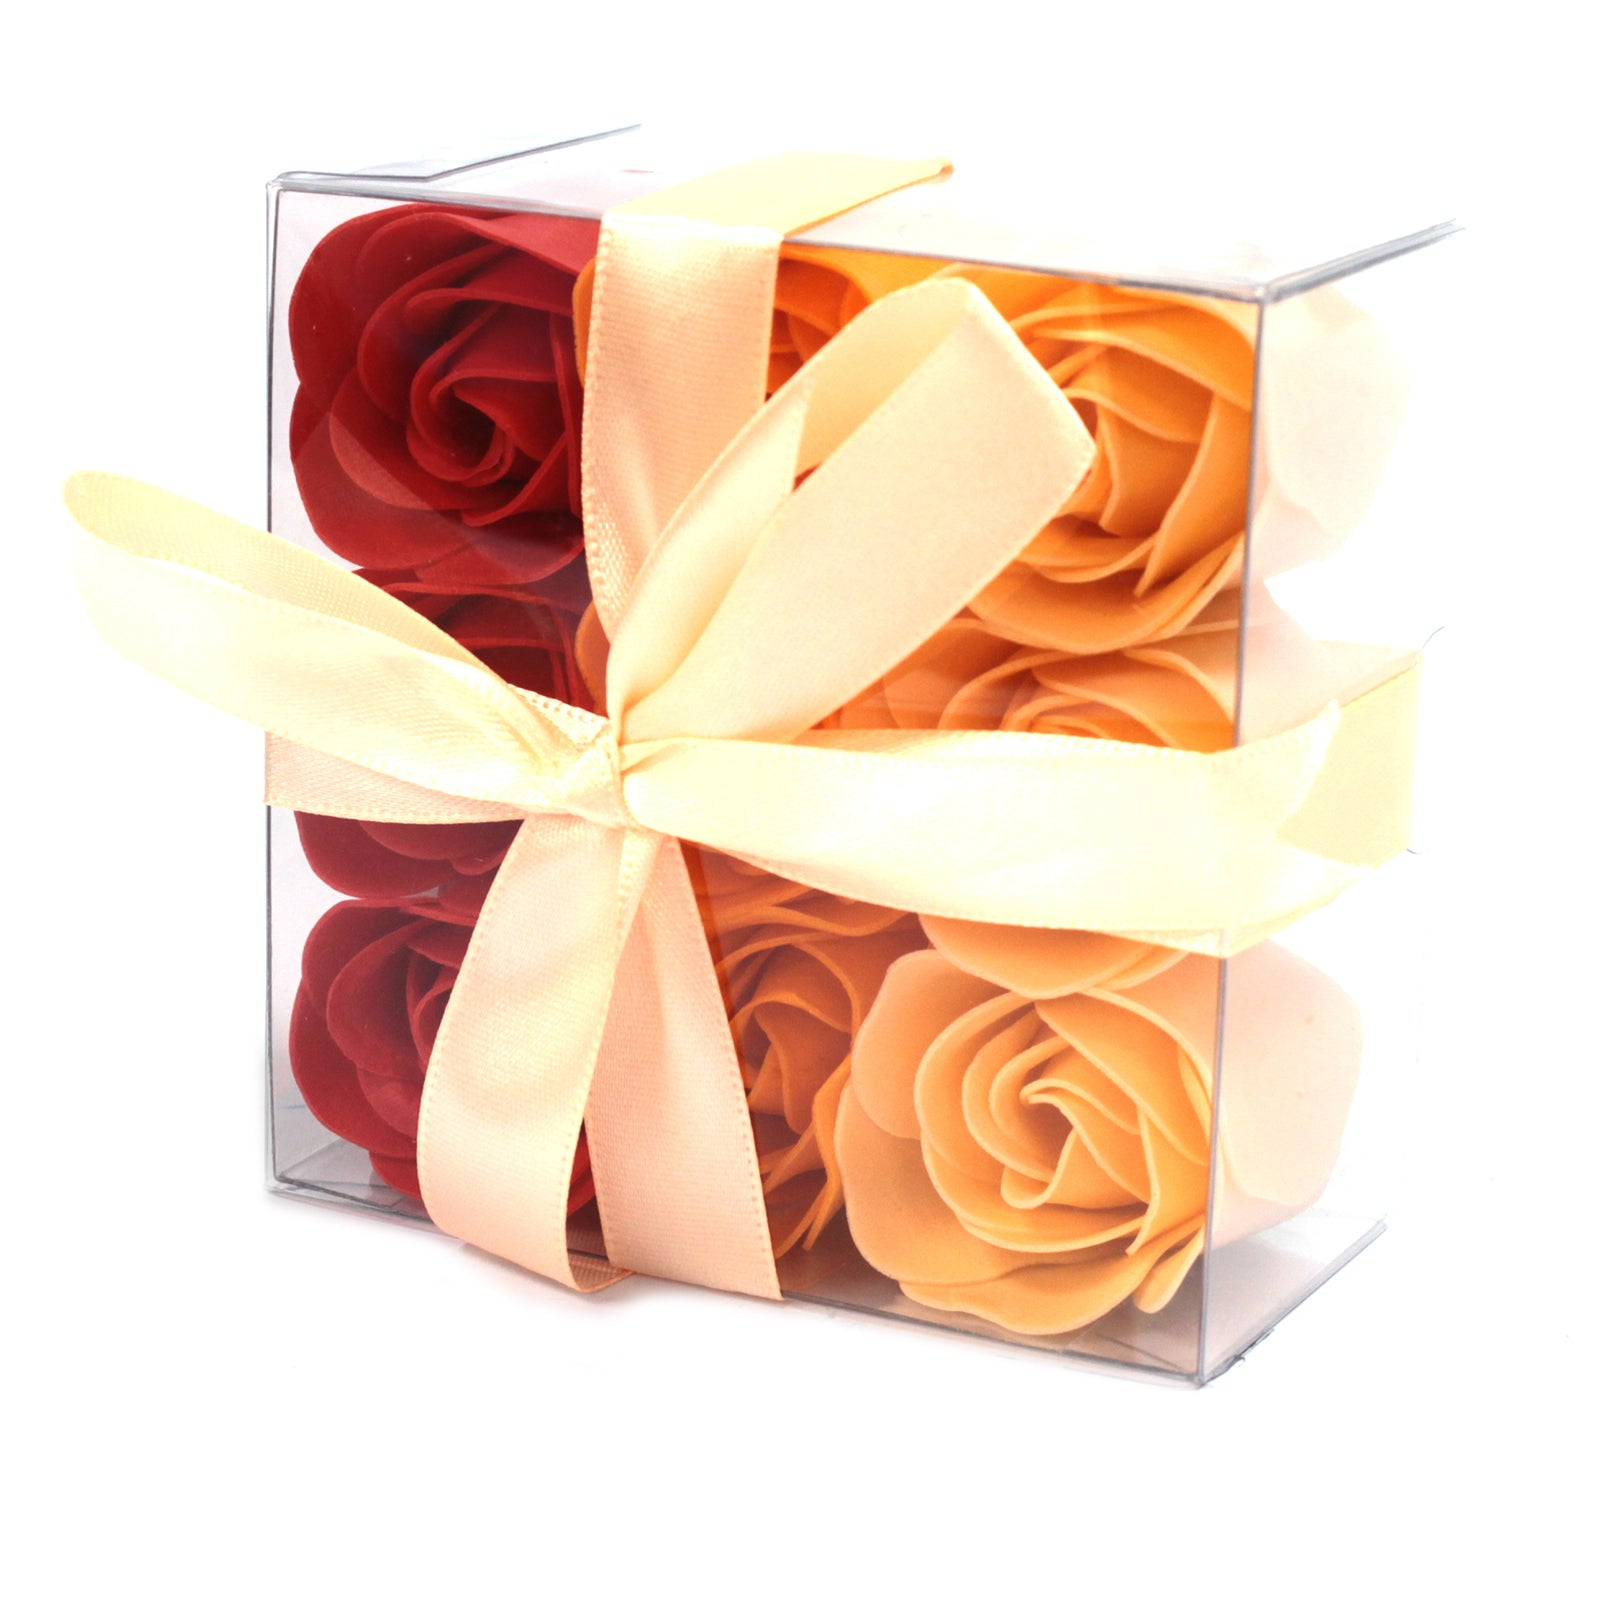 1x Set of 9 Soap Flower Box - Peach Roses